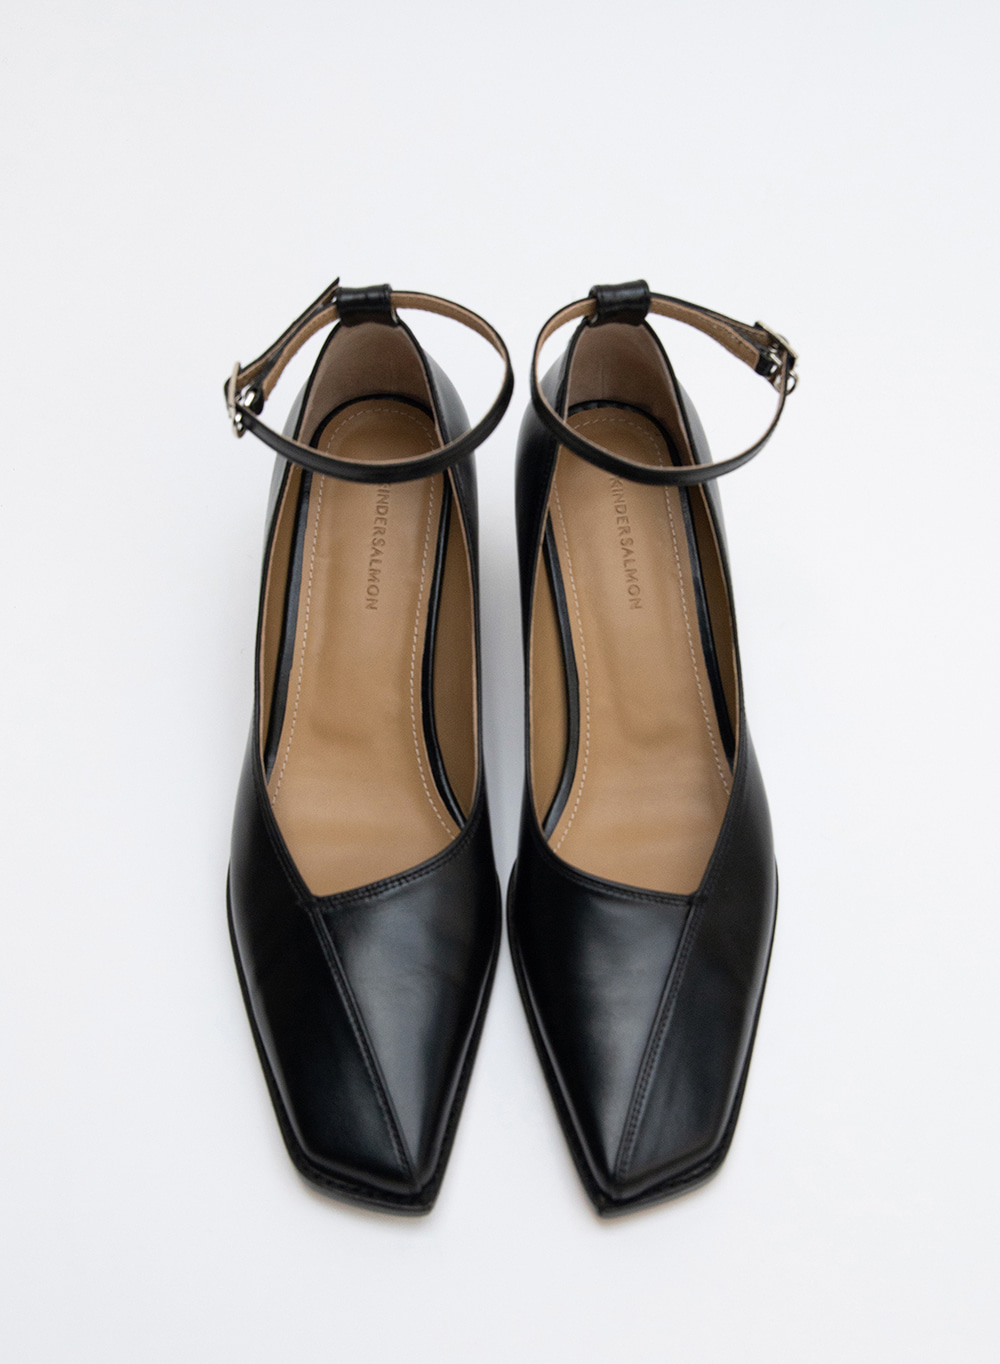 FW20 누 오블리크 Nuoy Oblique Strap Pumps Black